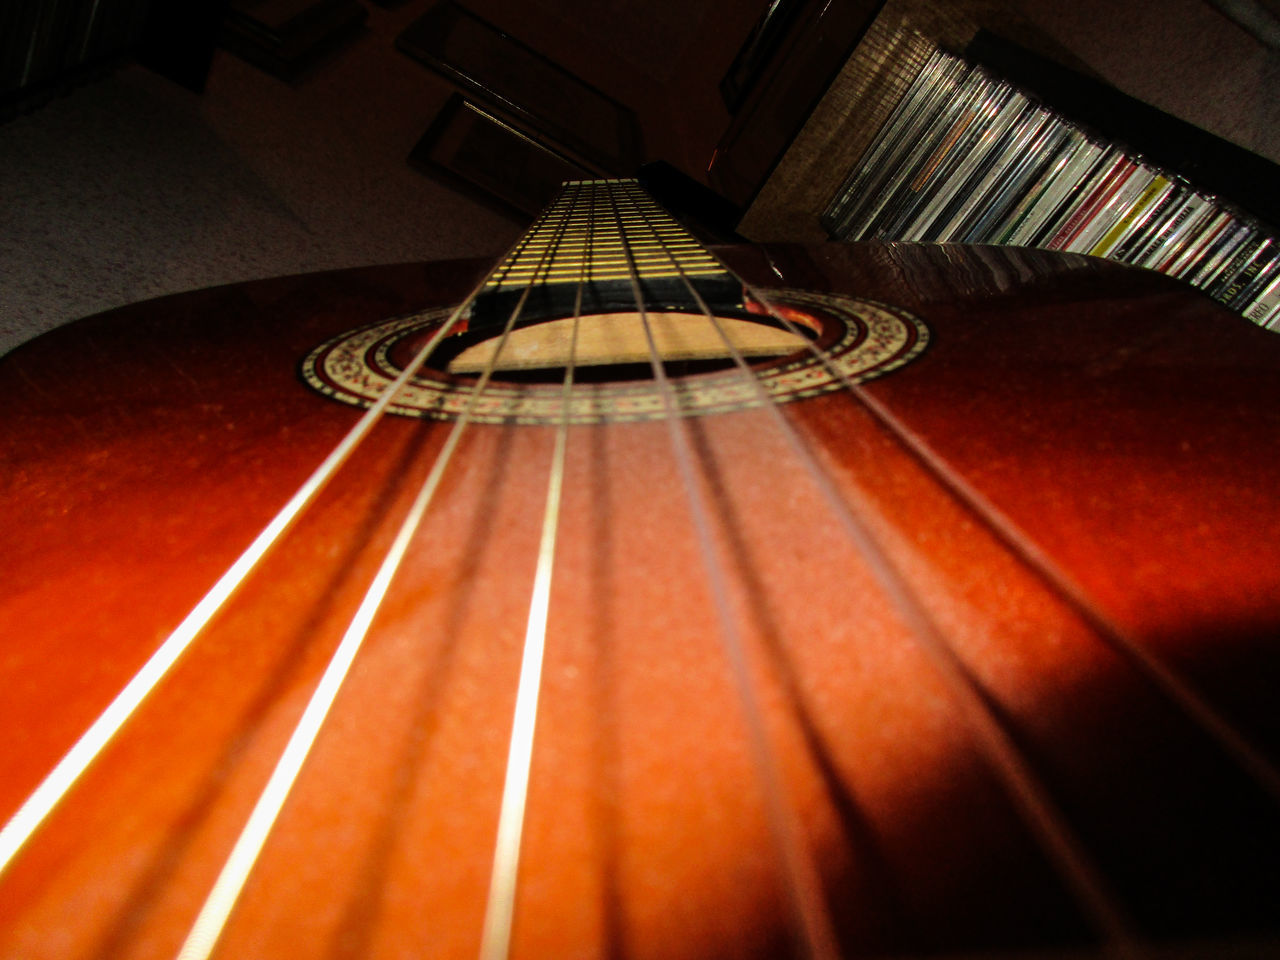 indoors, musical instrument, no people, musical instrument string, music, guitar, close-up, day